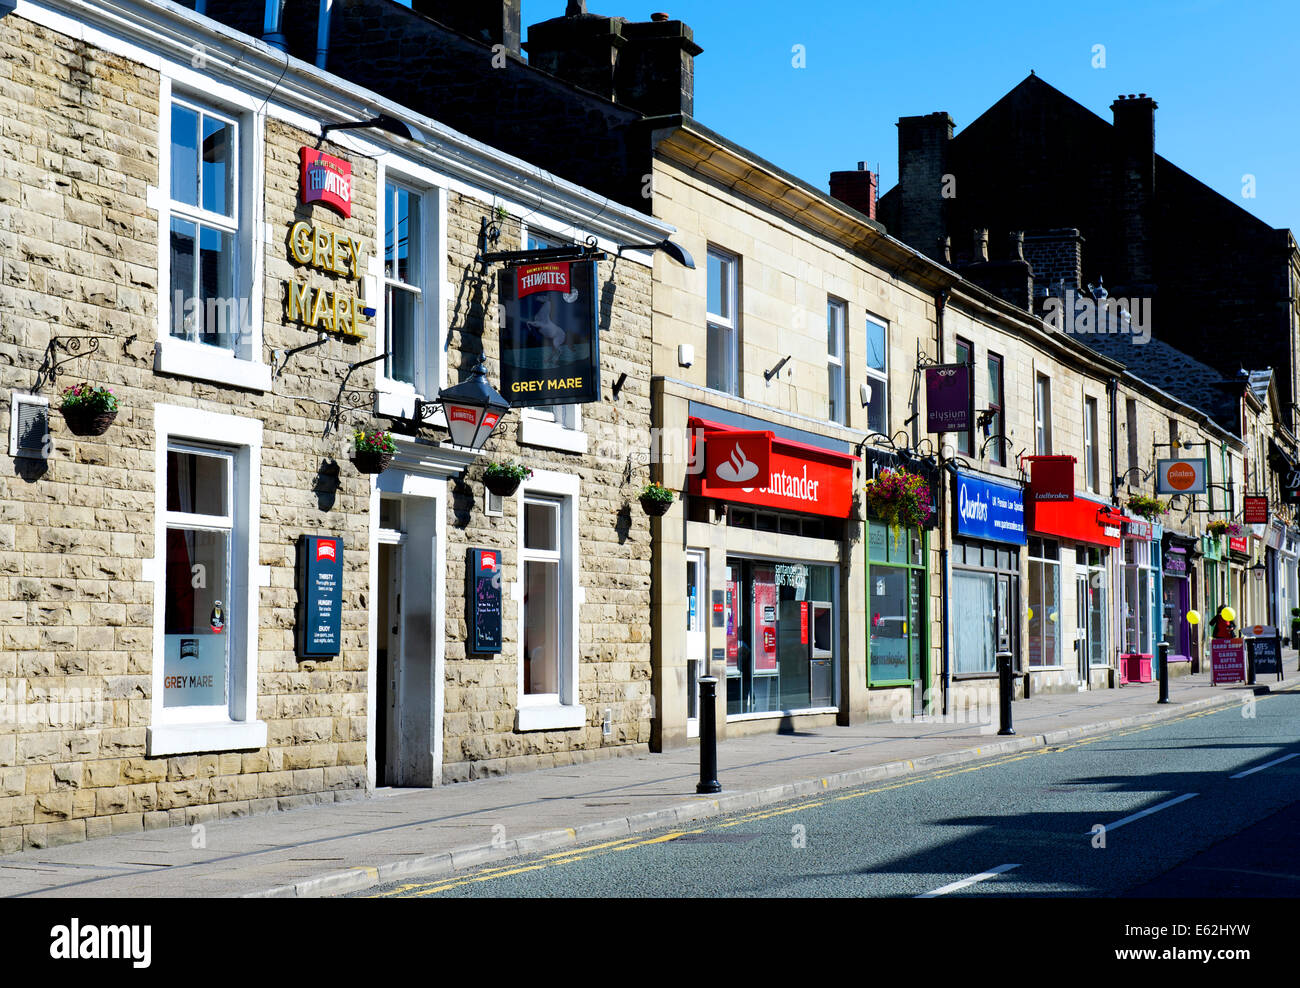 Street in Ramsbottom, Greater Manchester, England UK - Stock Image